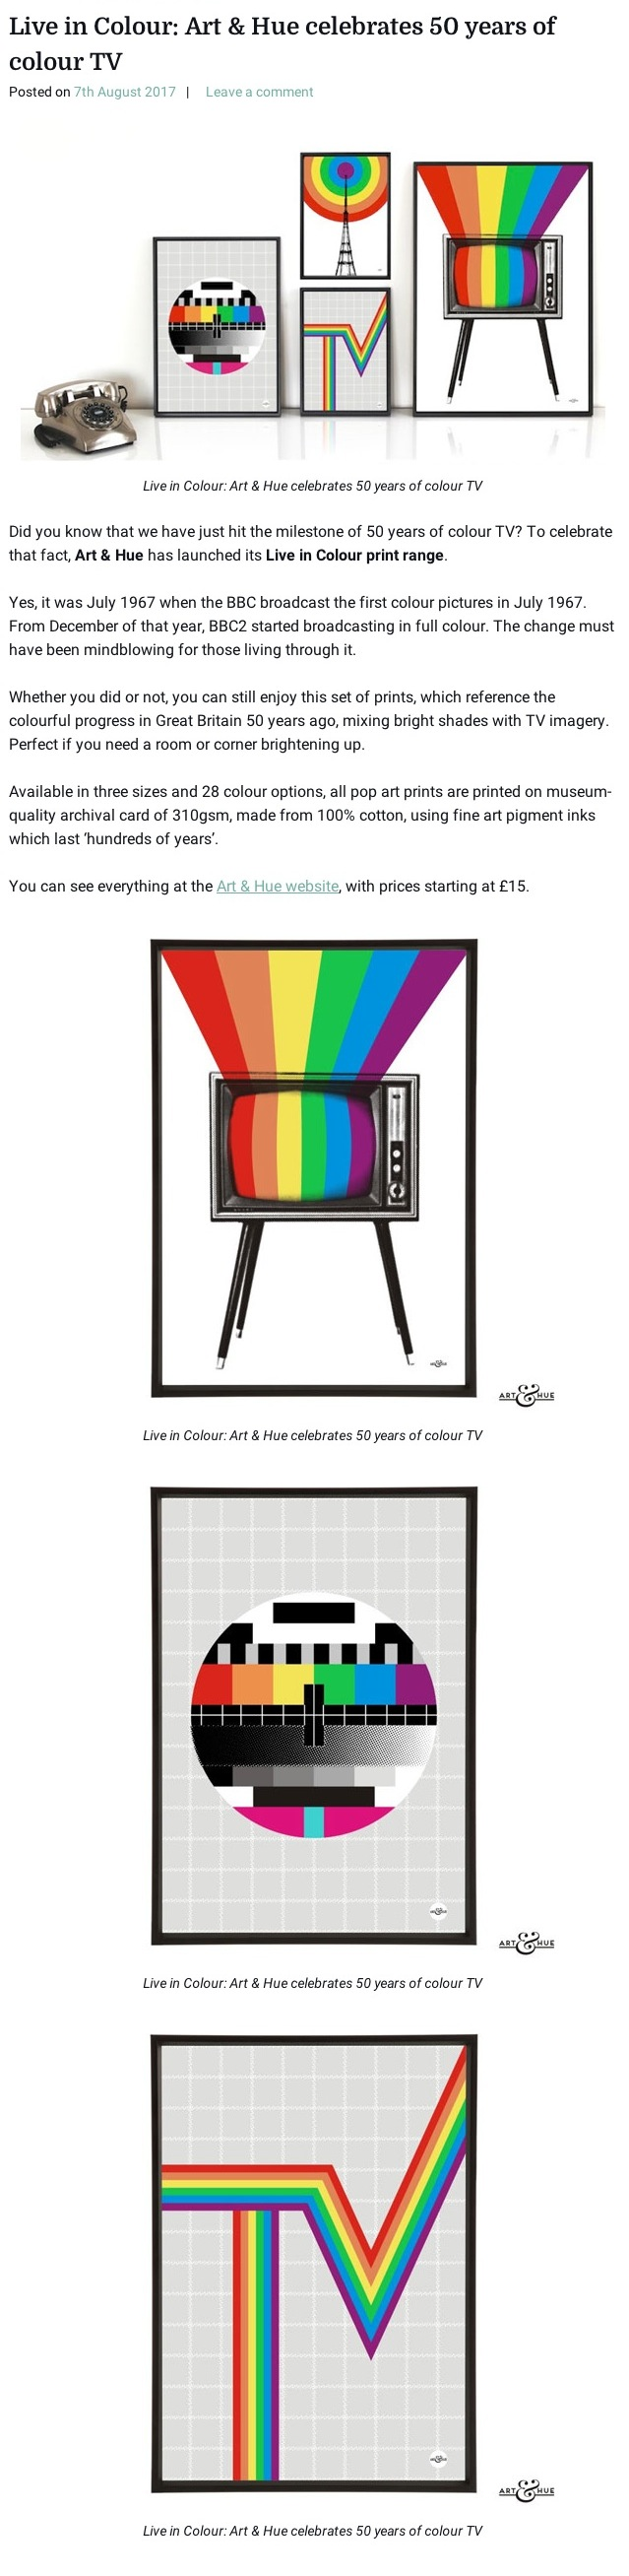 Live in Colour: Art & Hue celebrates 50 years of colour TV | Retro to Go